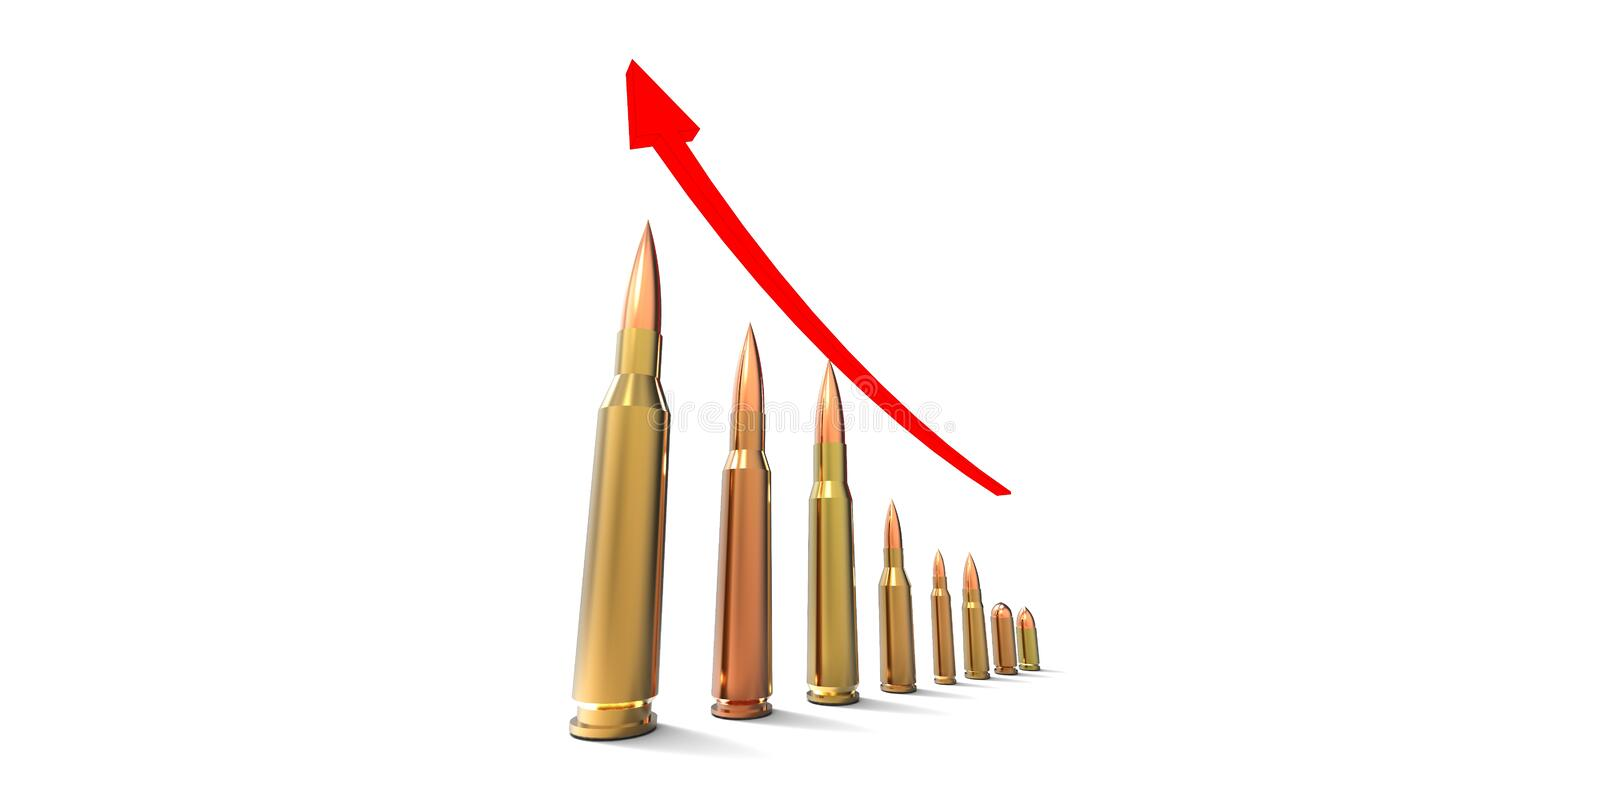 Bullets chart royalty free illustration